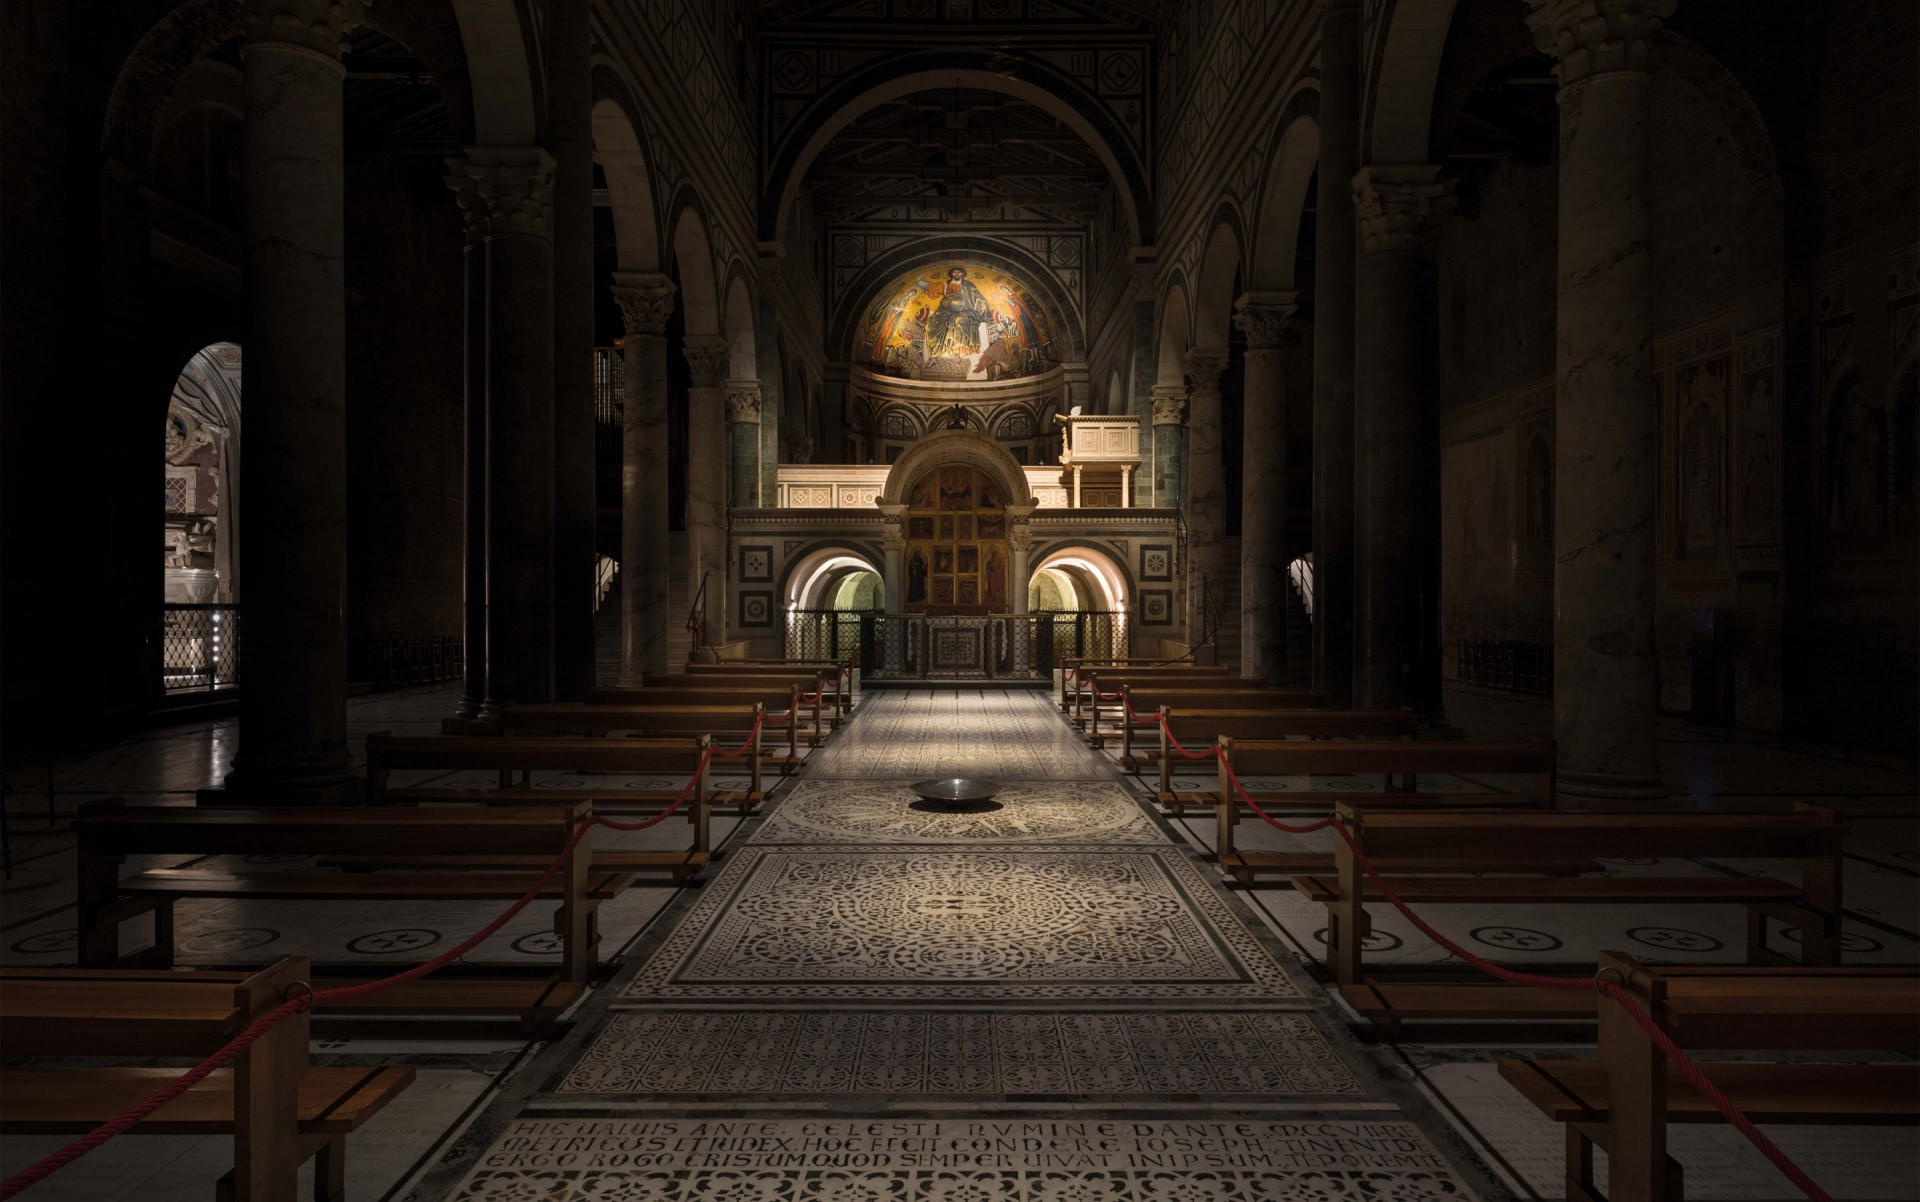 Upon entering the basilica, one is struck by the contrast between the natural outdoor light and the darkness of the interior.  – Matteo Bencini - Matteo Trentanove